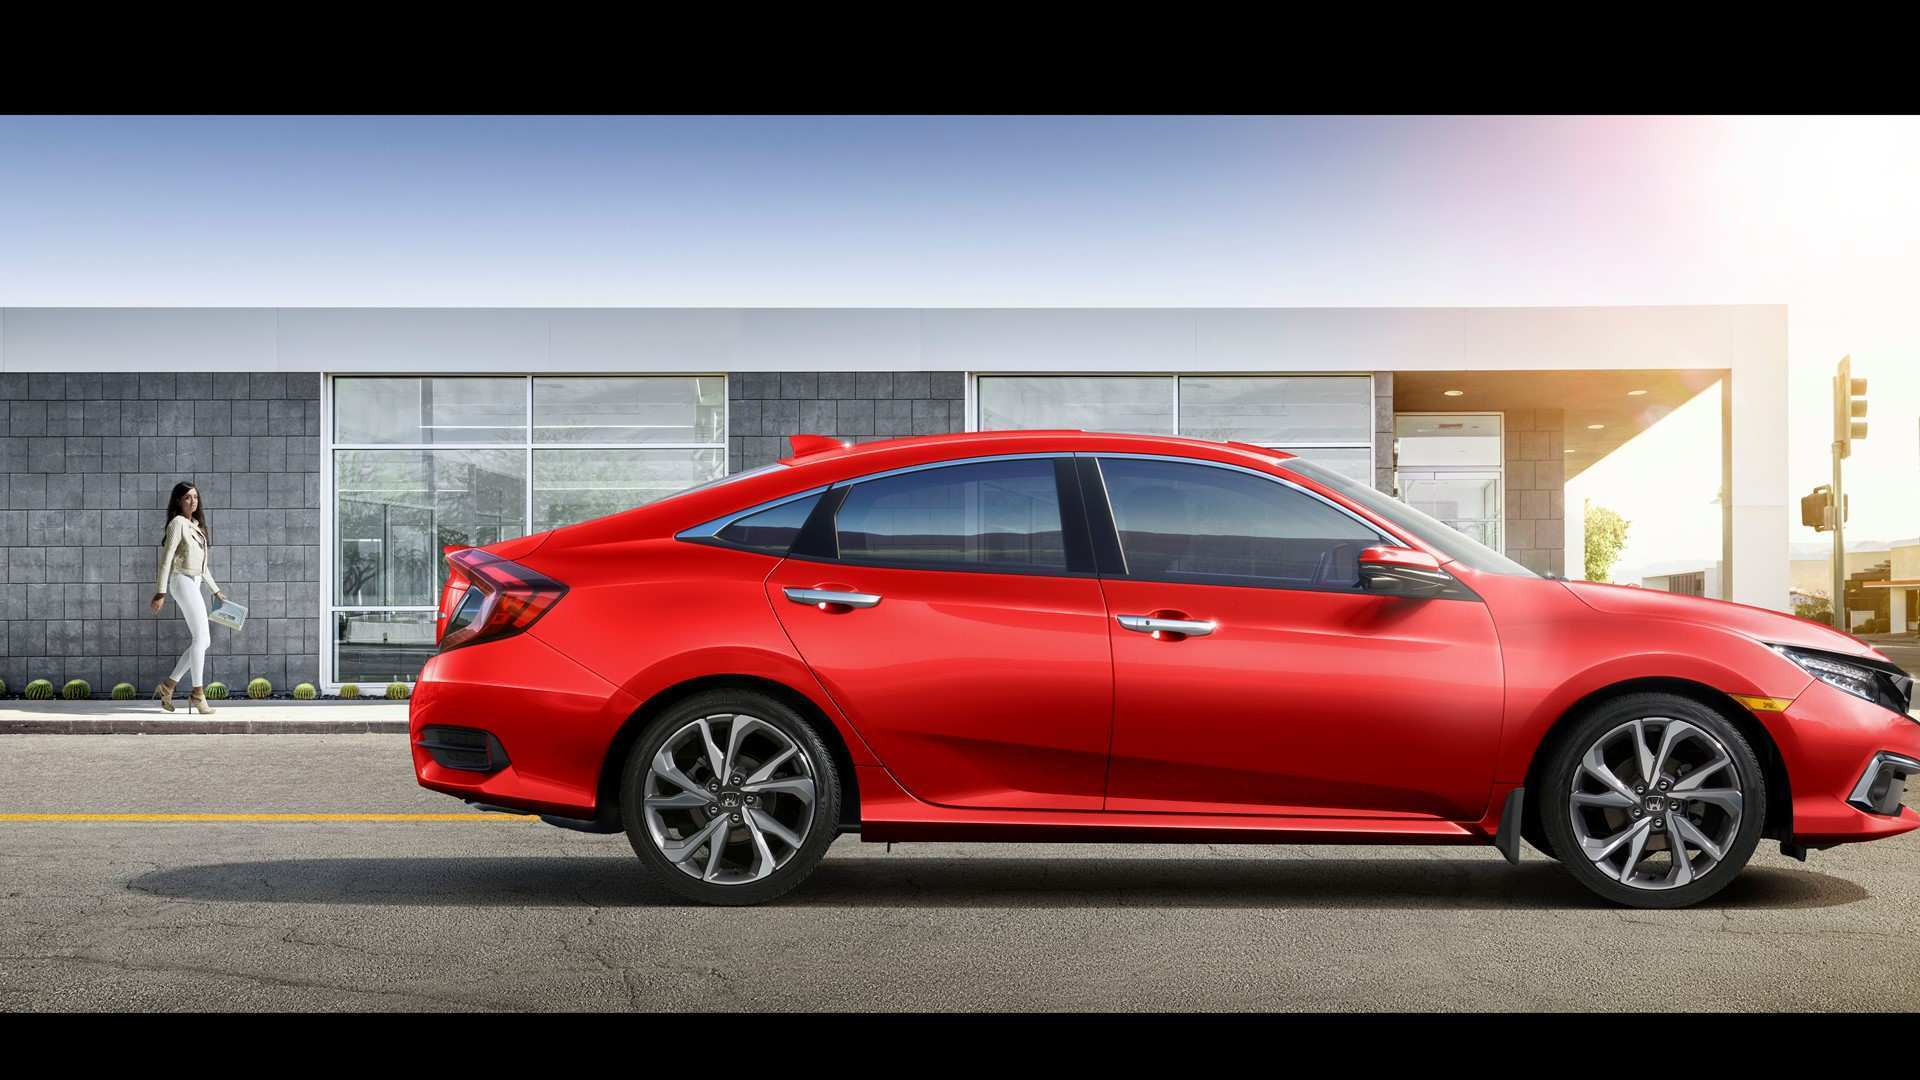 32 A 2019 Honda Civic Wallpaper